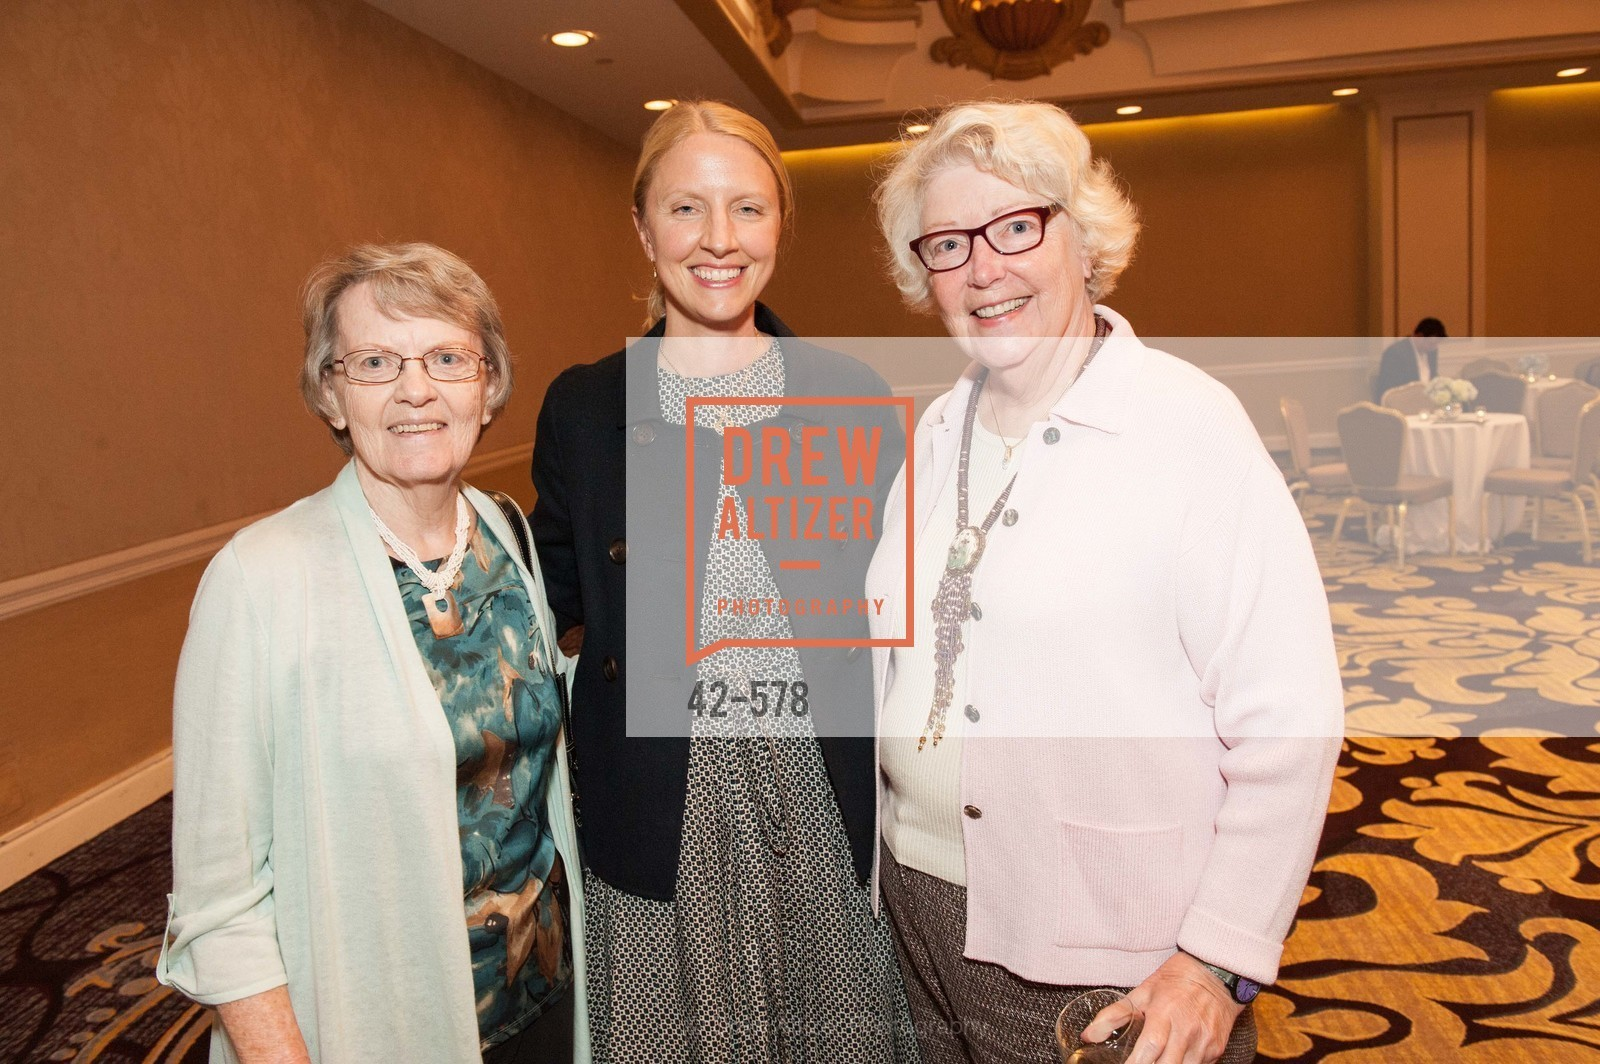 Jan Lynch, Margaret Lynch, Patricia Carlson, HOMELESS PRENATAL Annual Luncheon 2014, US, September 30th, 2014,Drew Altizer, Drew Altizer Photography, full-service agency, private events, San Francisco photographer, photographer california